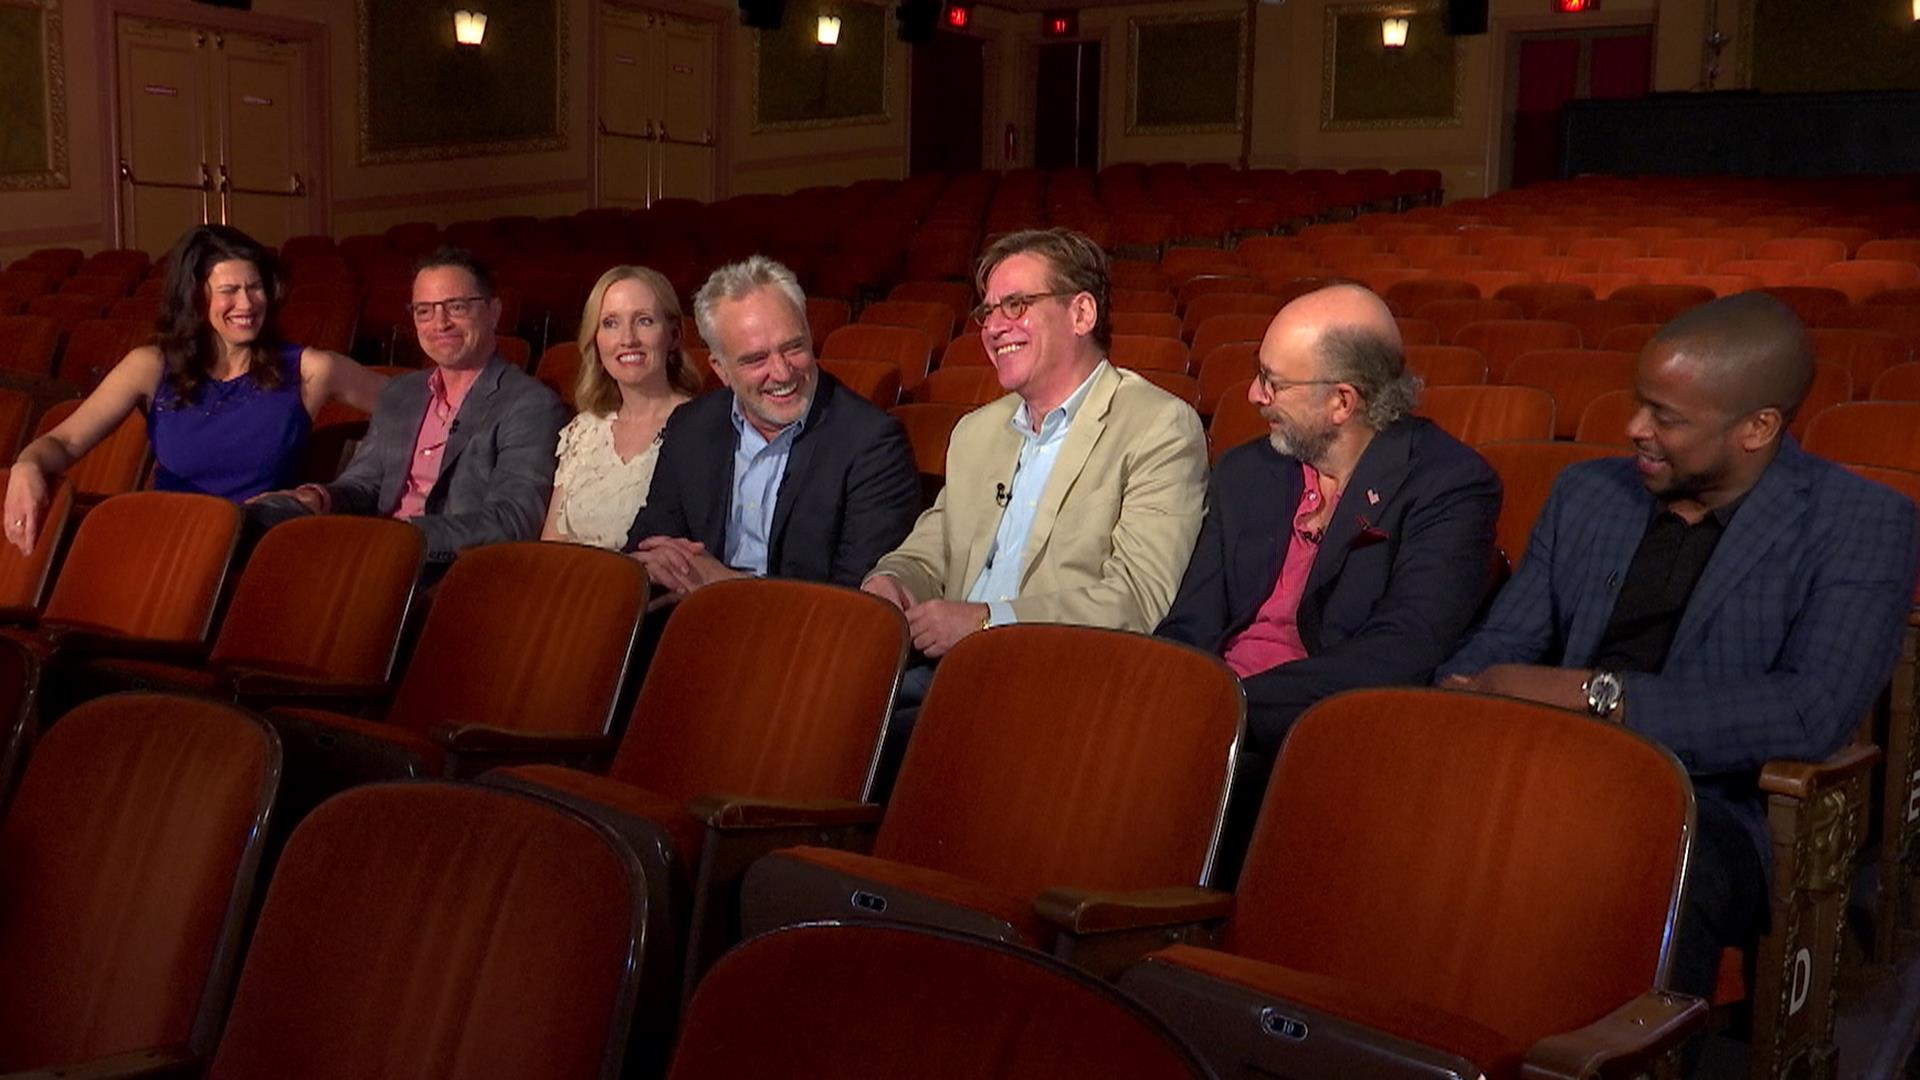 Full Interview West Wing Cast Reunites On Today 10